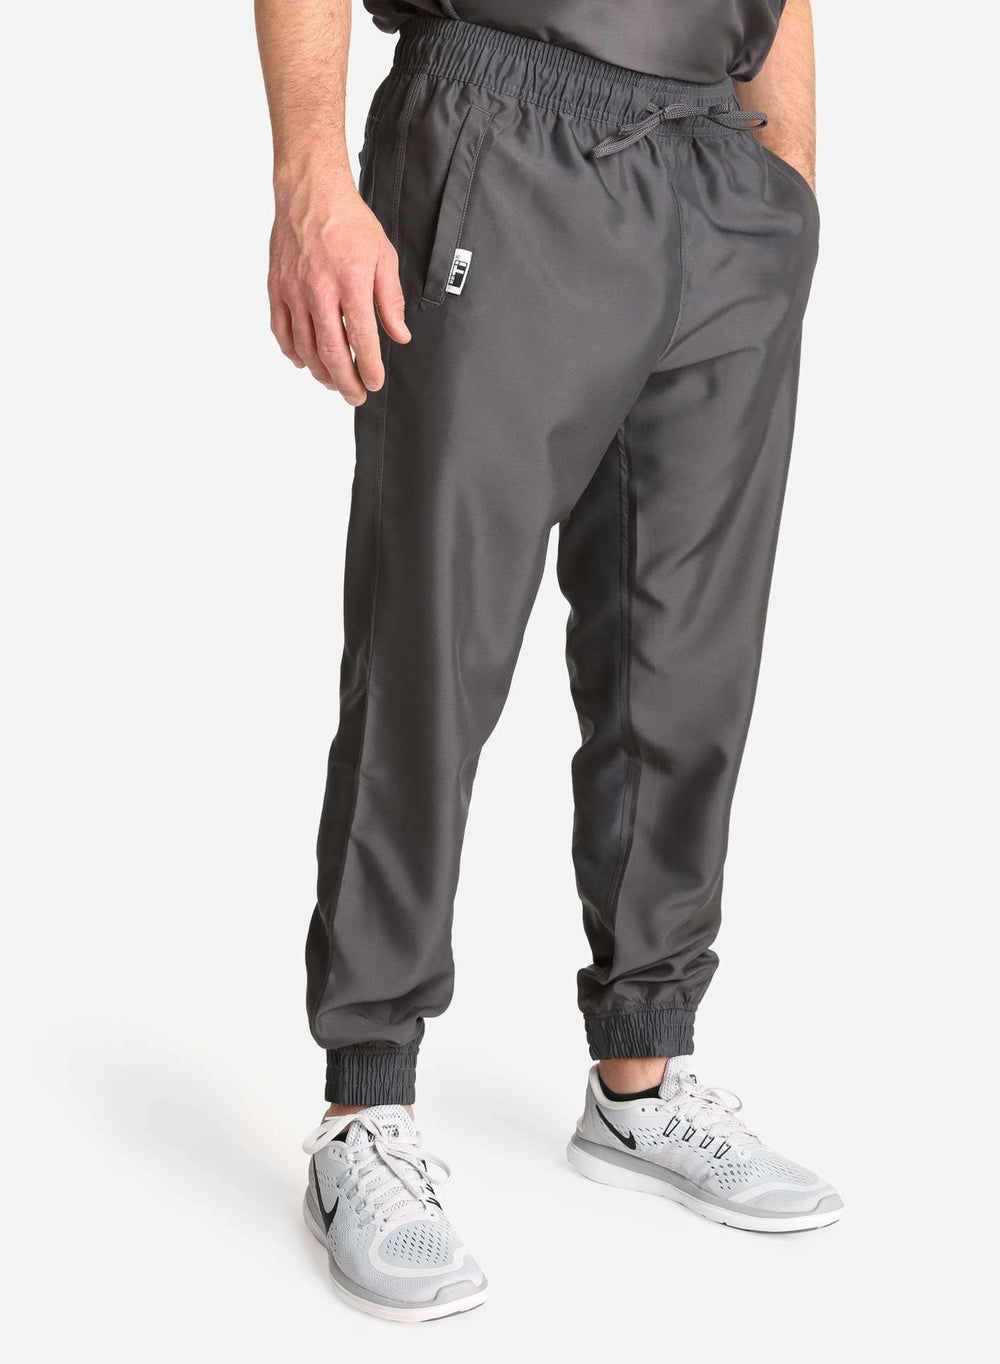 Men's Jogger Scrub Pants in Dark Grey